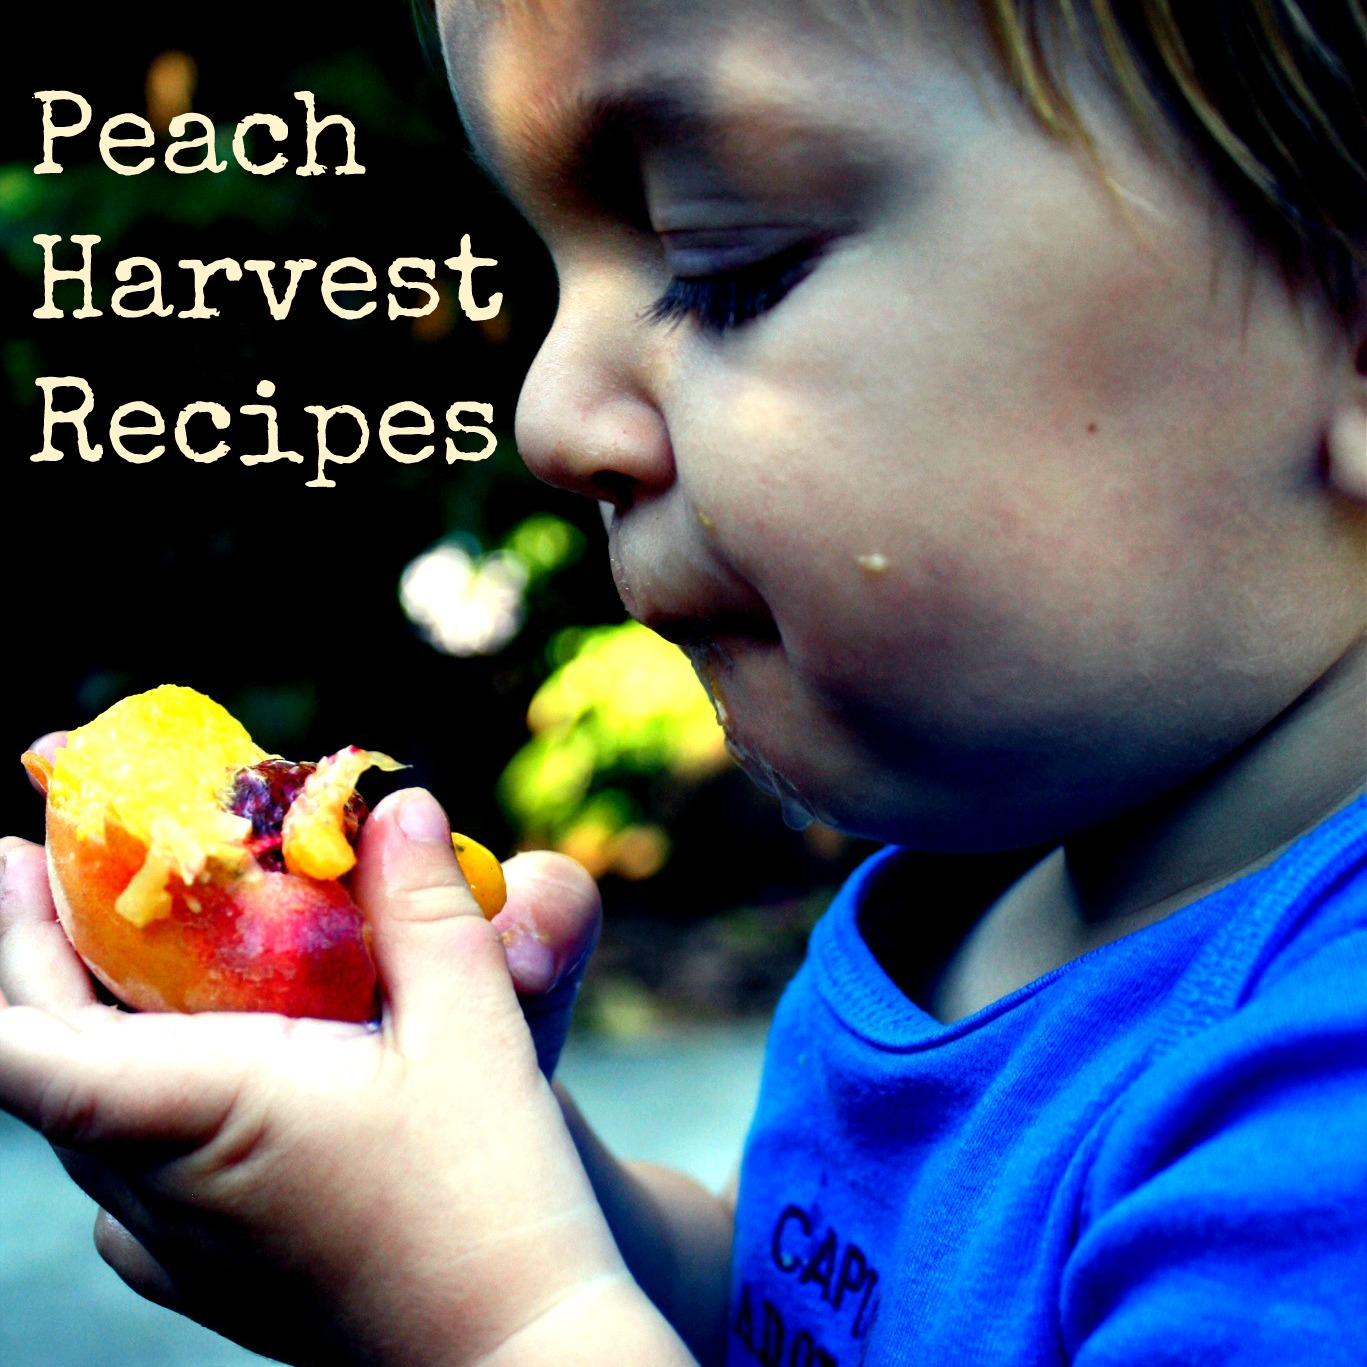 Peach Harvest Recipes